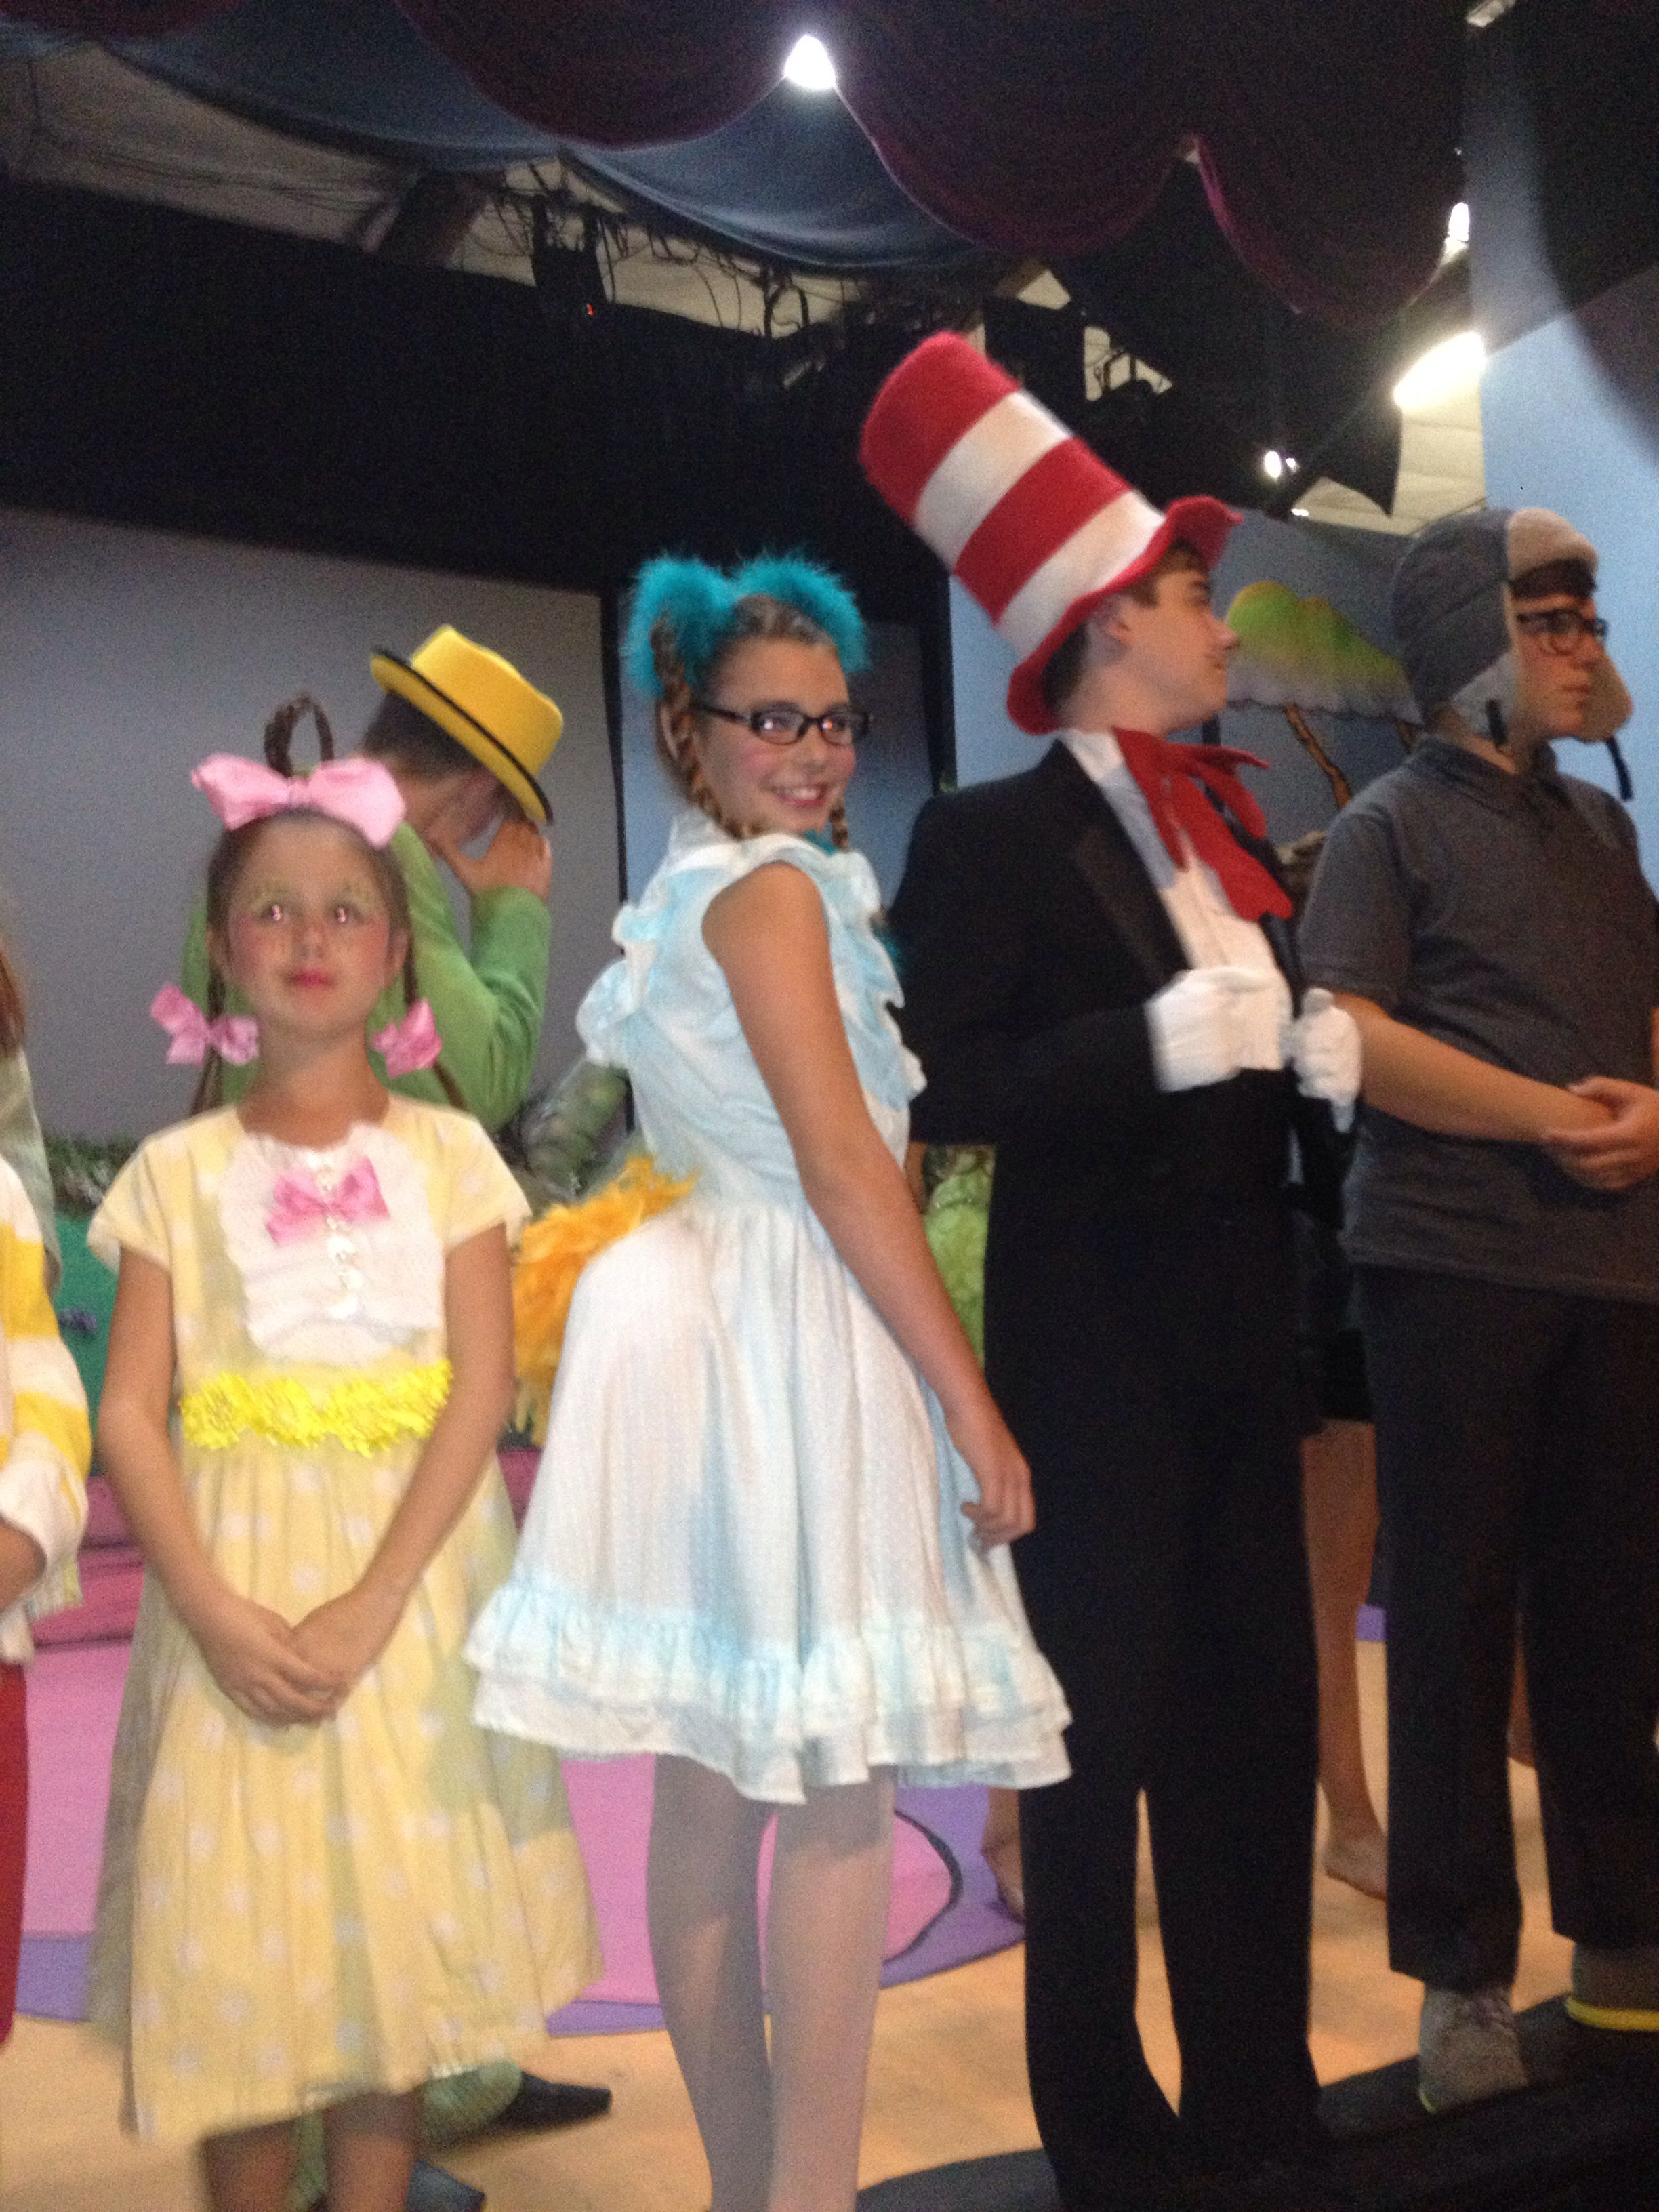 Gertrude, Horton, cat in hat, Cindy Lou who